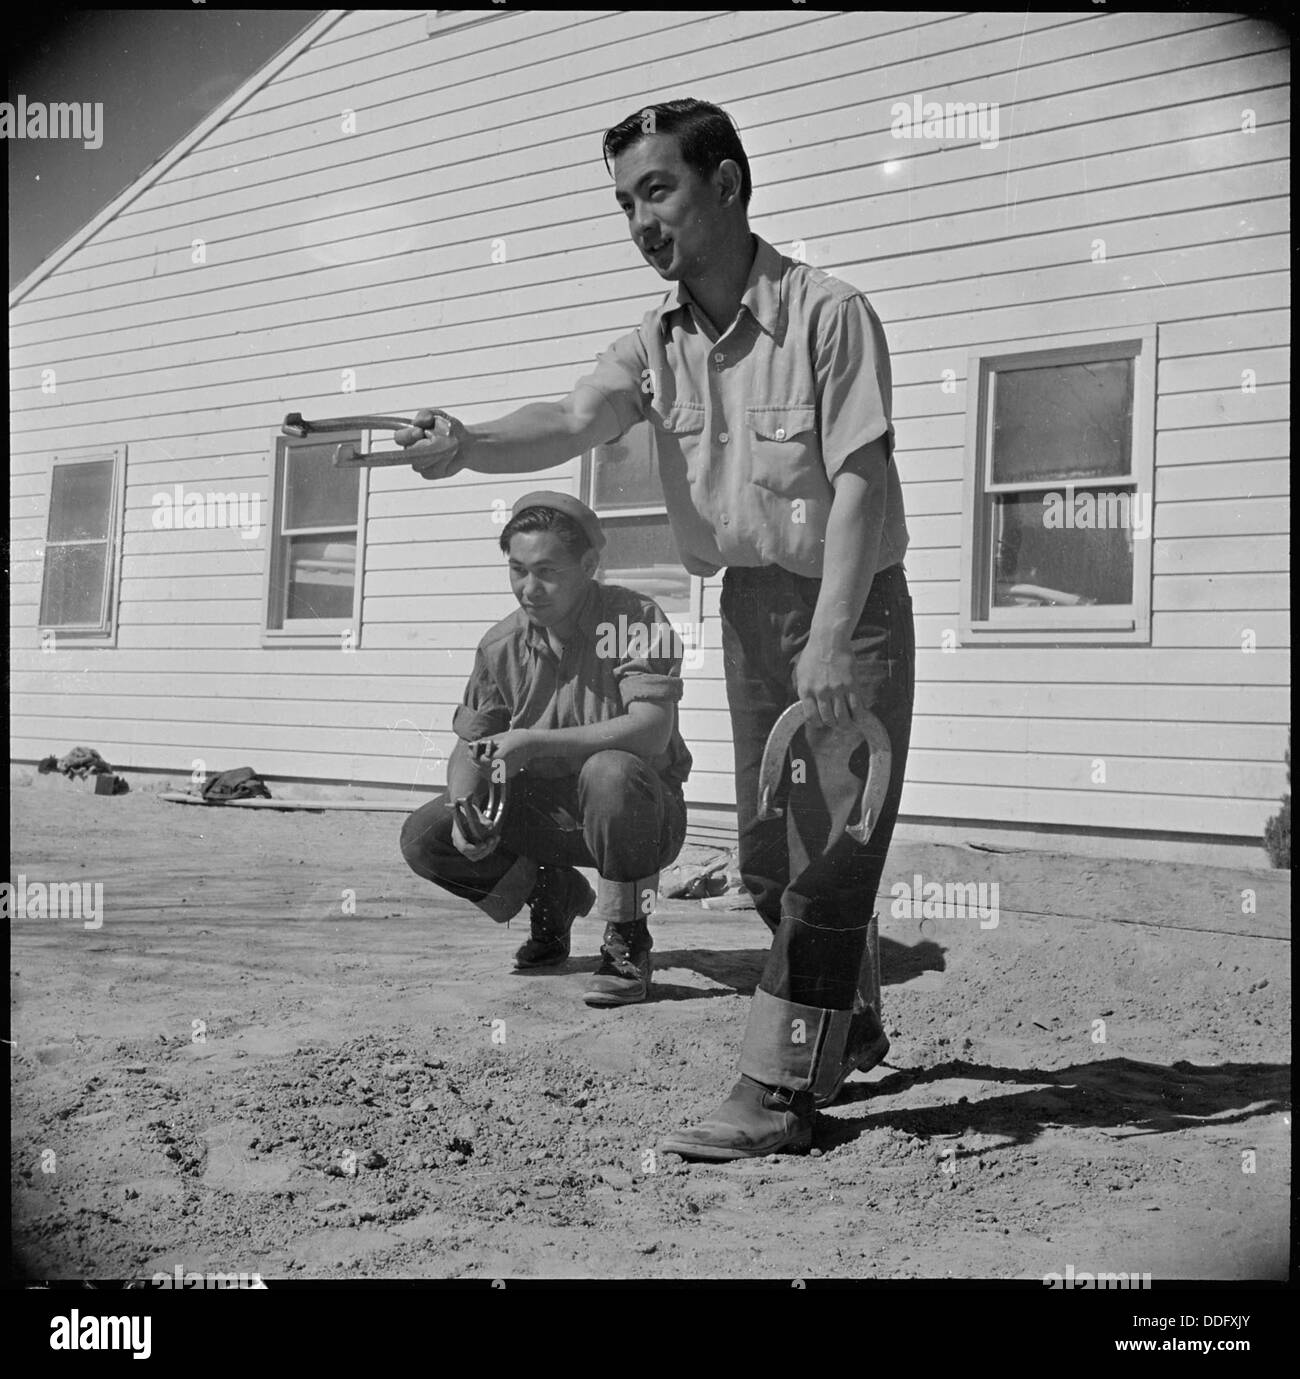 Topaz, Utah. Henry Yamashiro watches Tad Horita pitch a game of horseshoes. Members of this fire d . . . 537011 - Stock Image